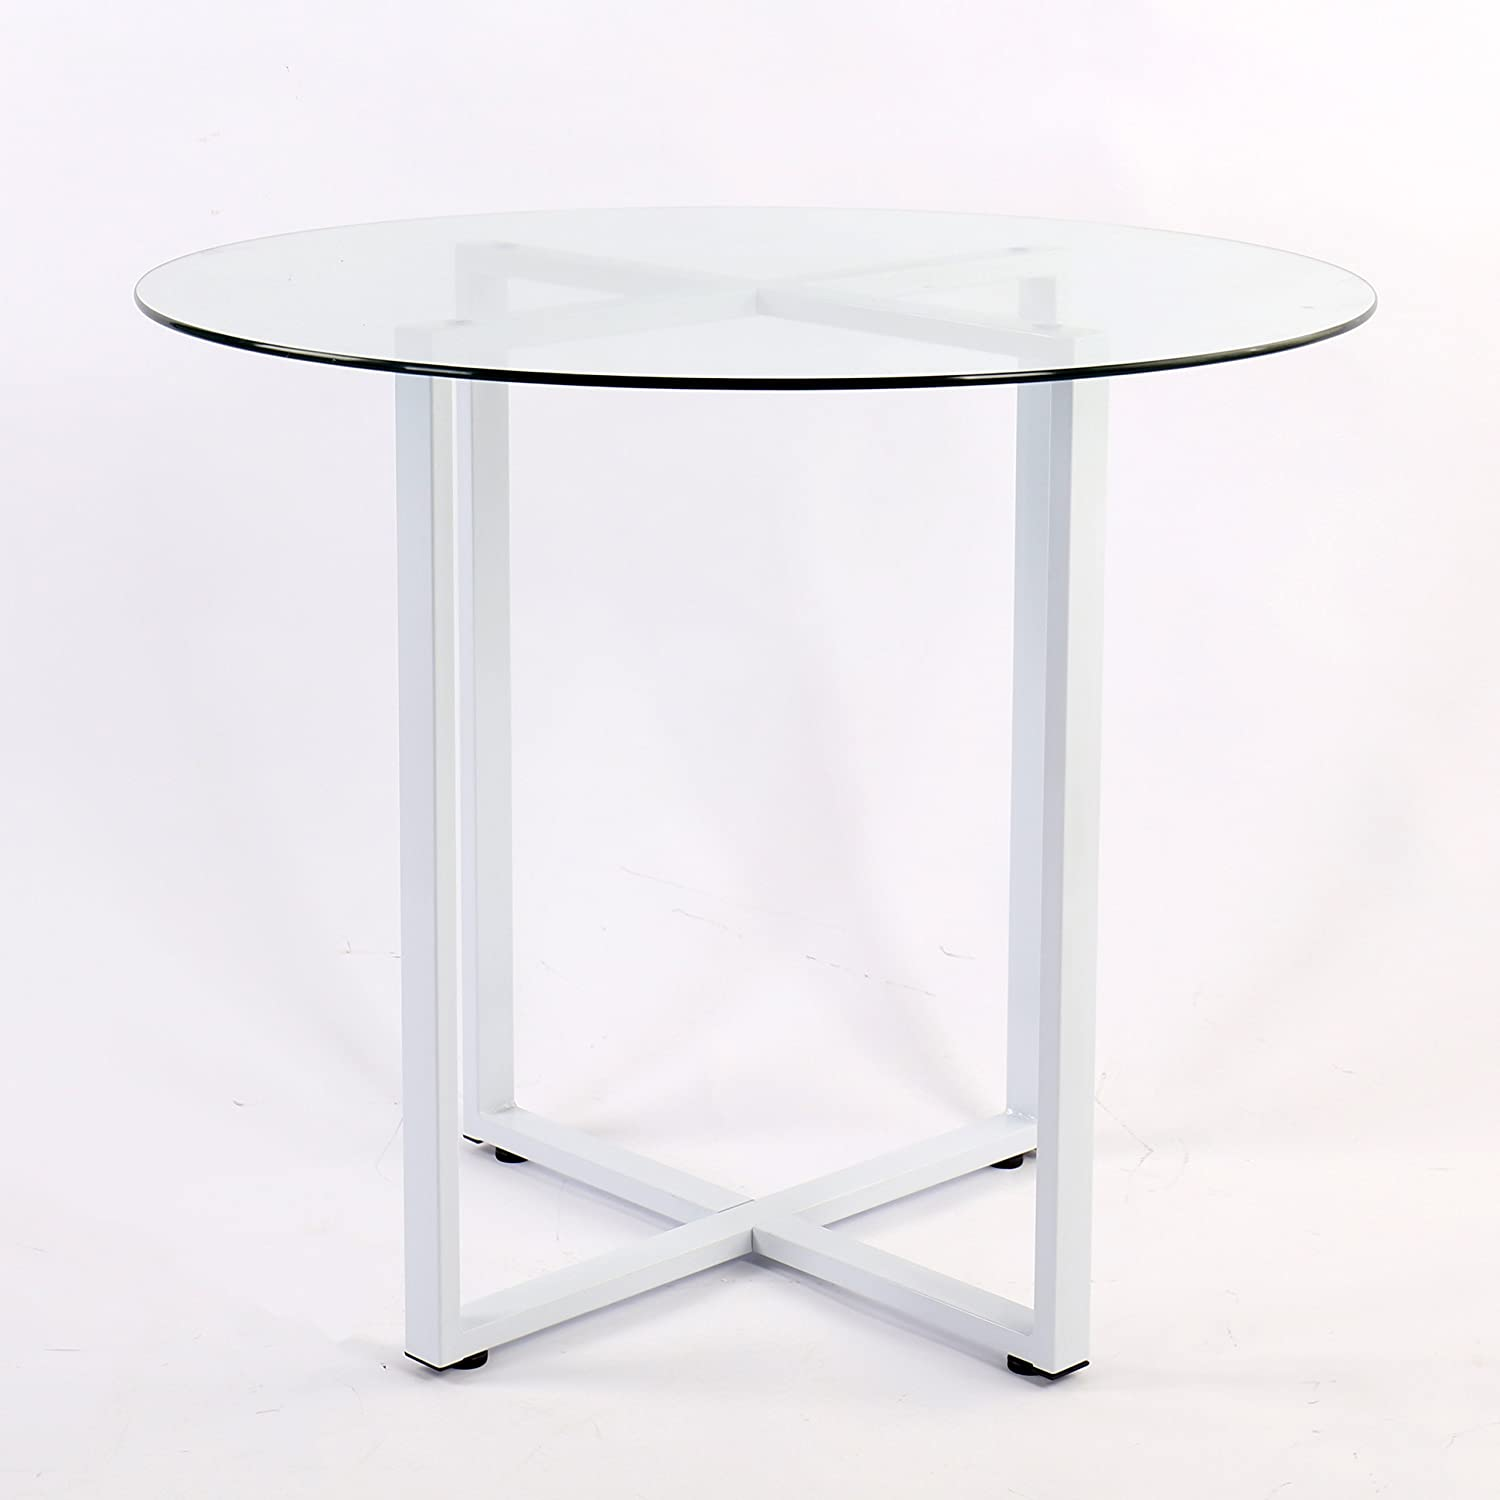 155ff55ee5e6 Cherry Tree Furniture CTF LEROY Round Clear Glass Dining Table with White  Steel Frame  Amazon.co.uk  Kitchen   Home